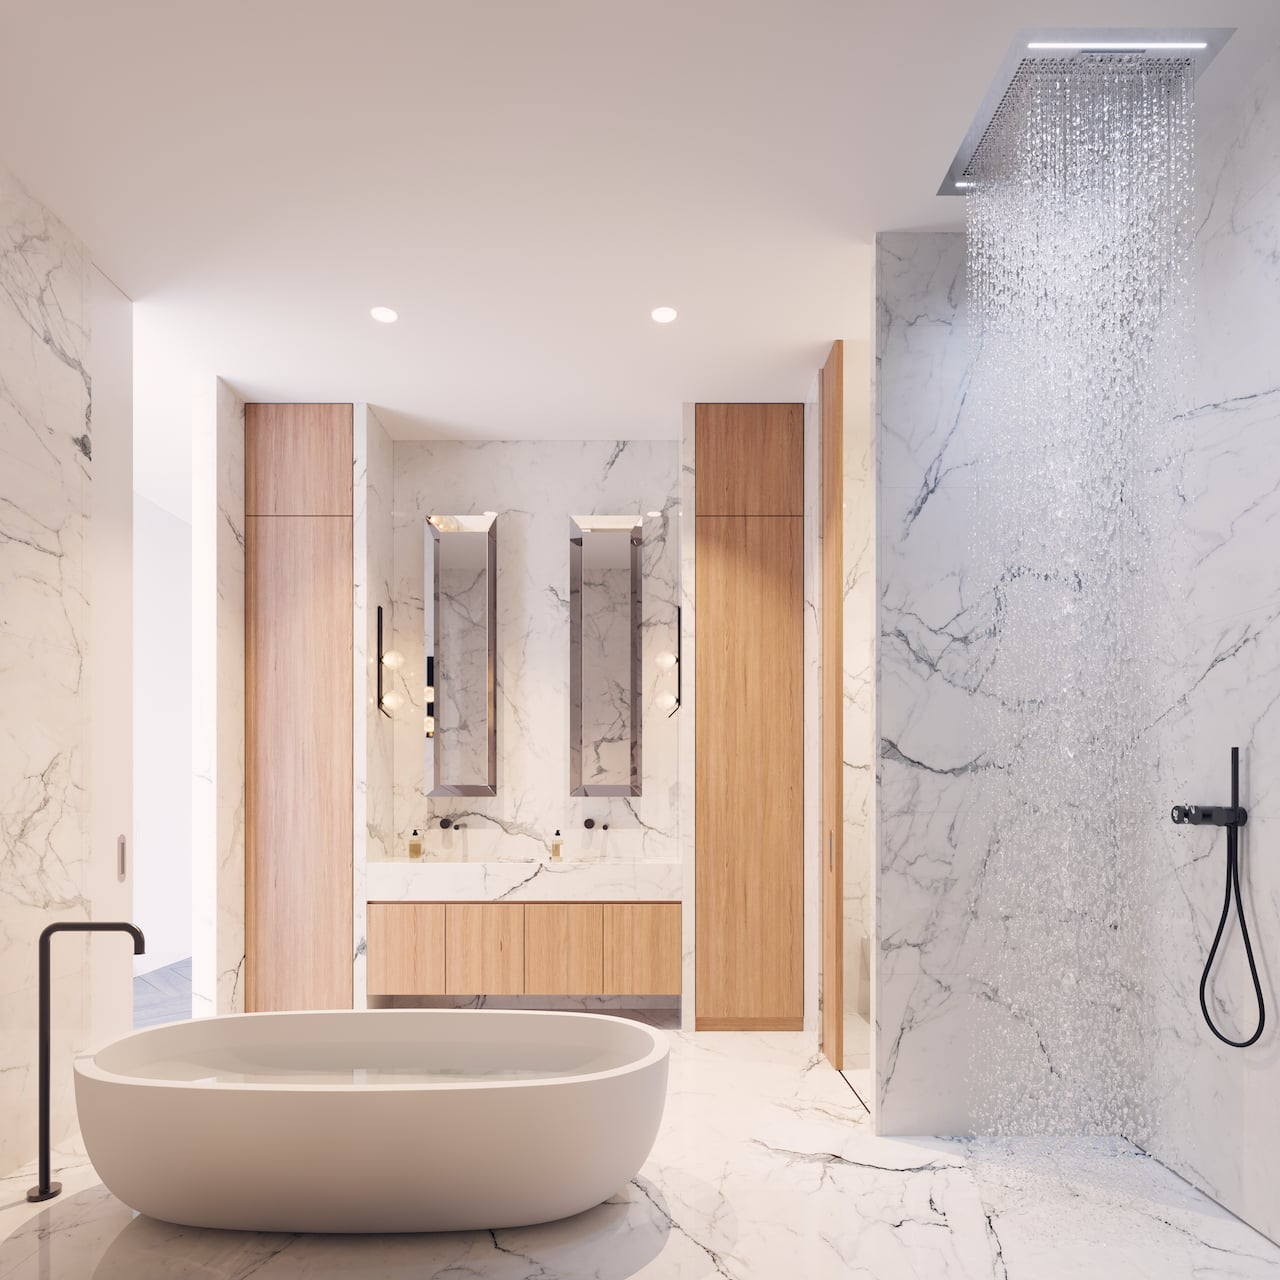 Rendering of One Delisle Penthouse interior ensuite